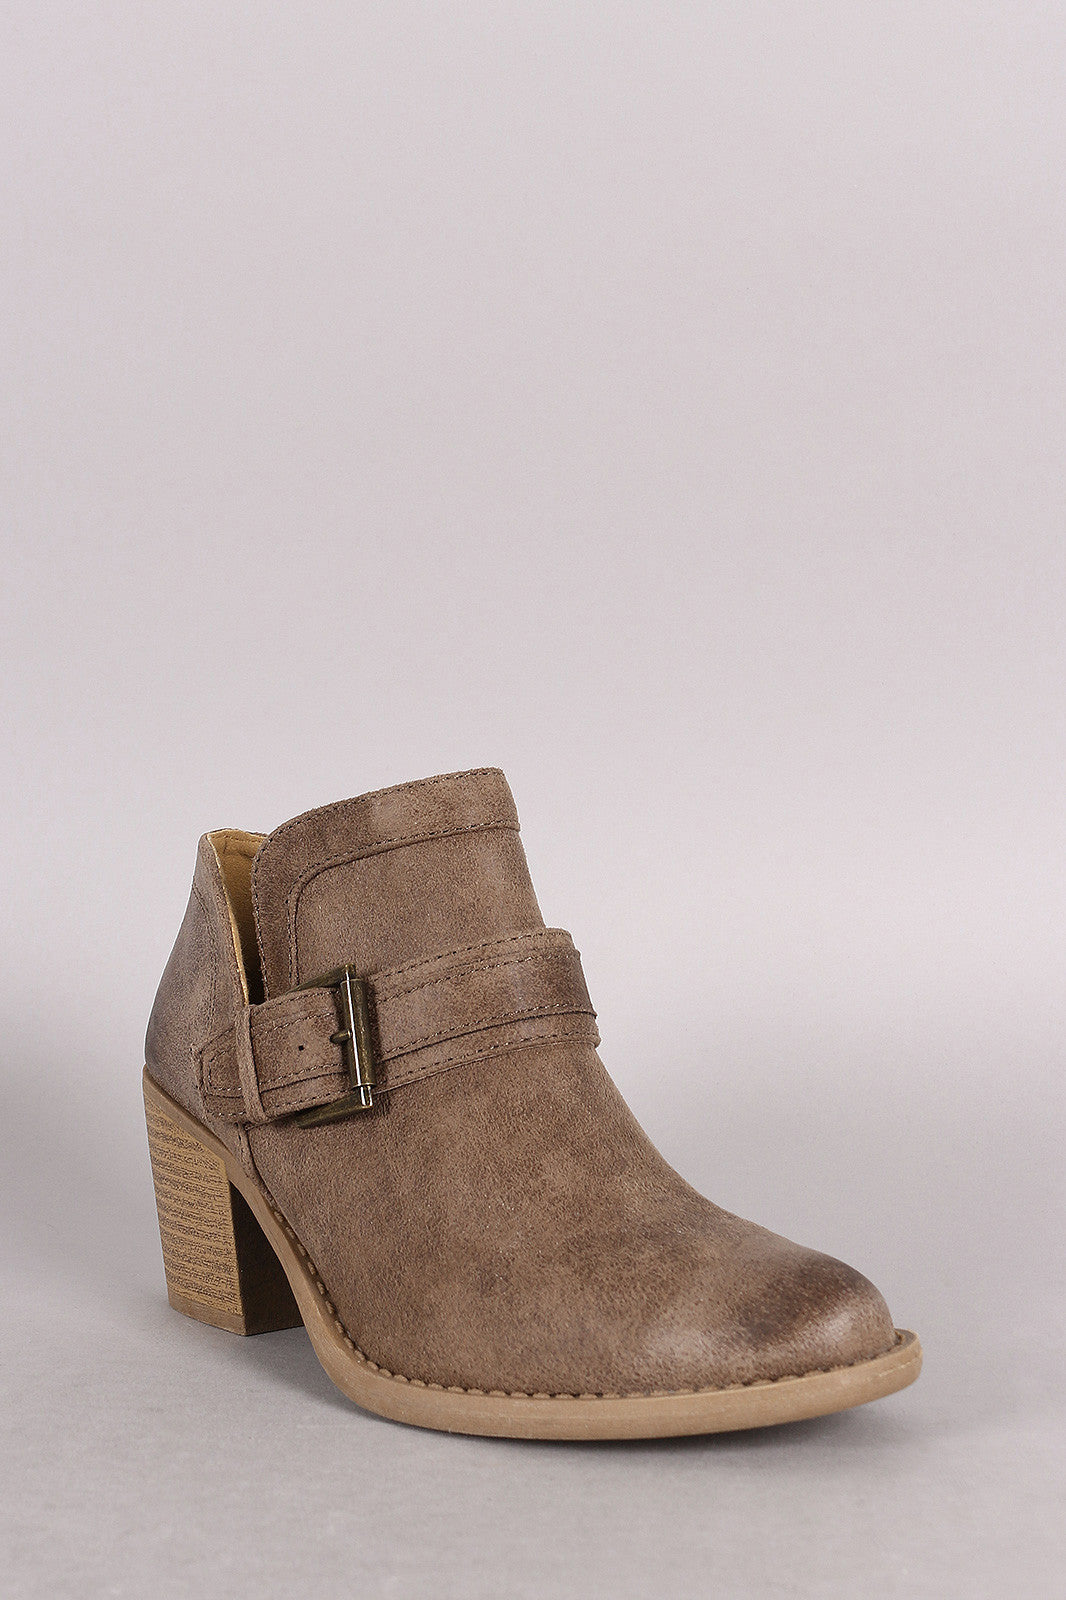 Qupid Buckled Cowgirl Chunky Heeled Booties - Thick 'N' Curvy Shop - 4